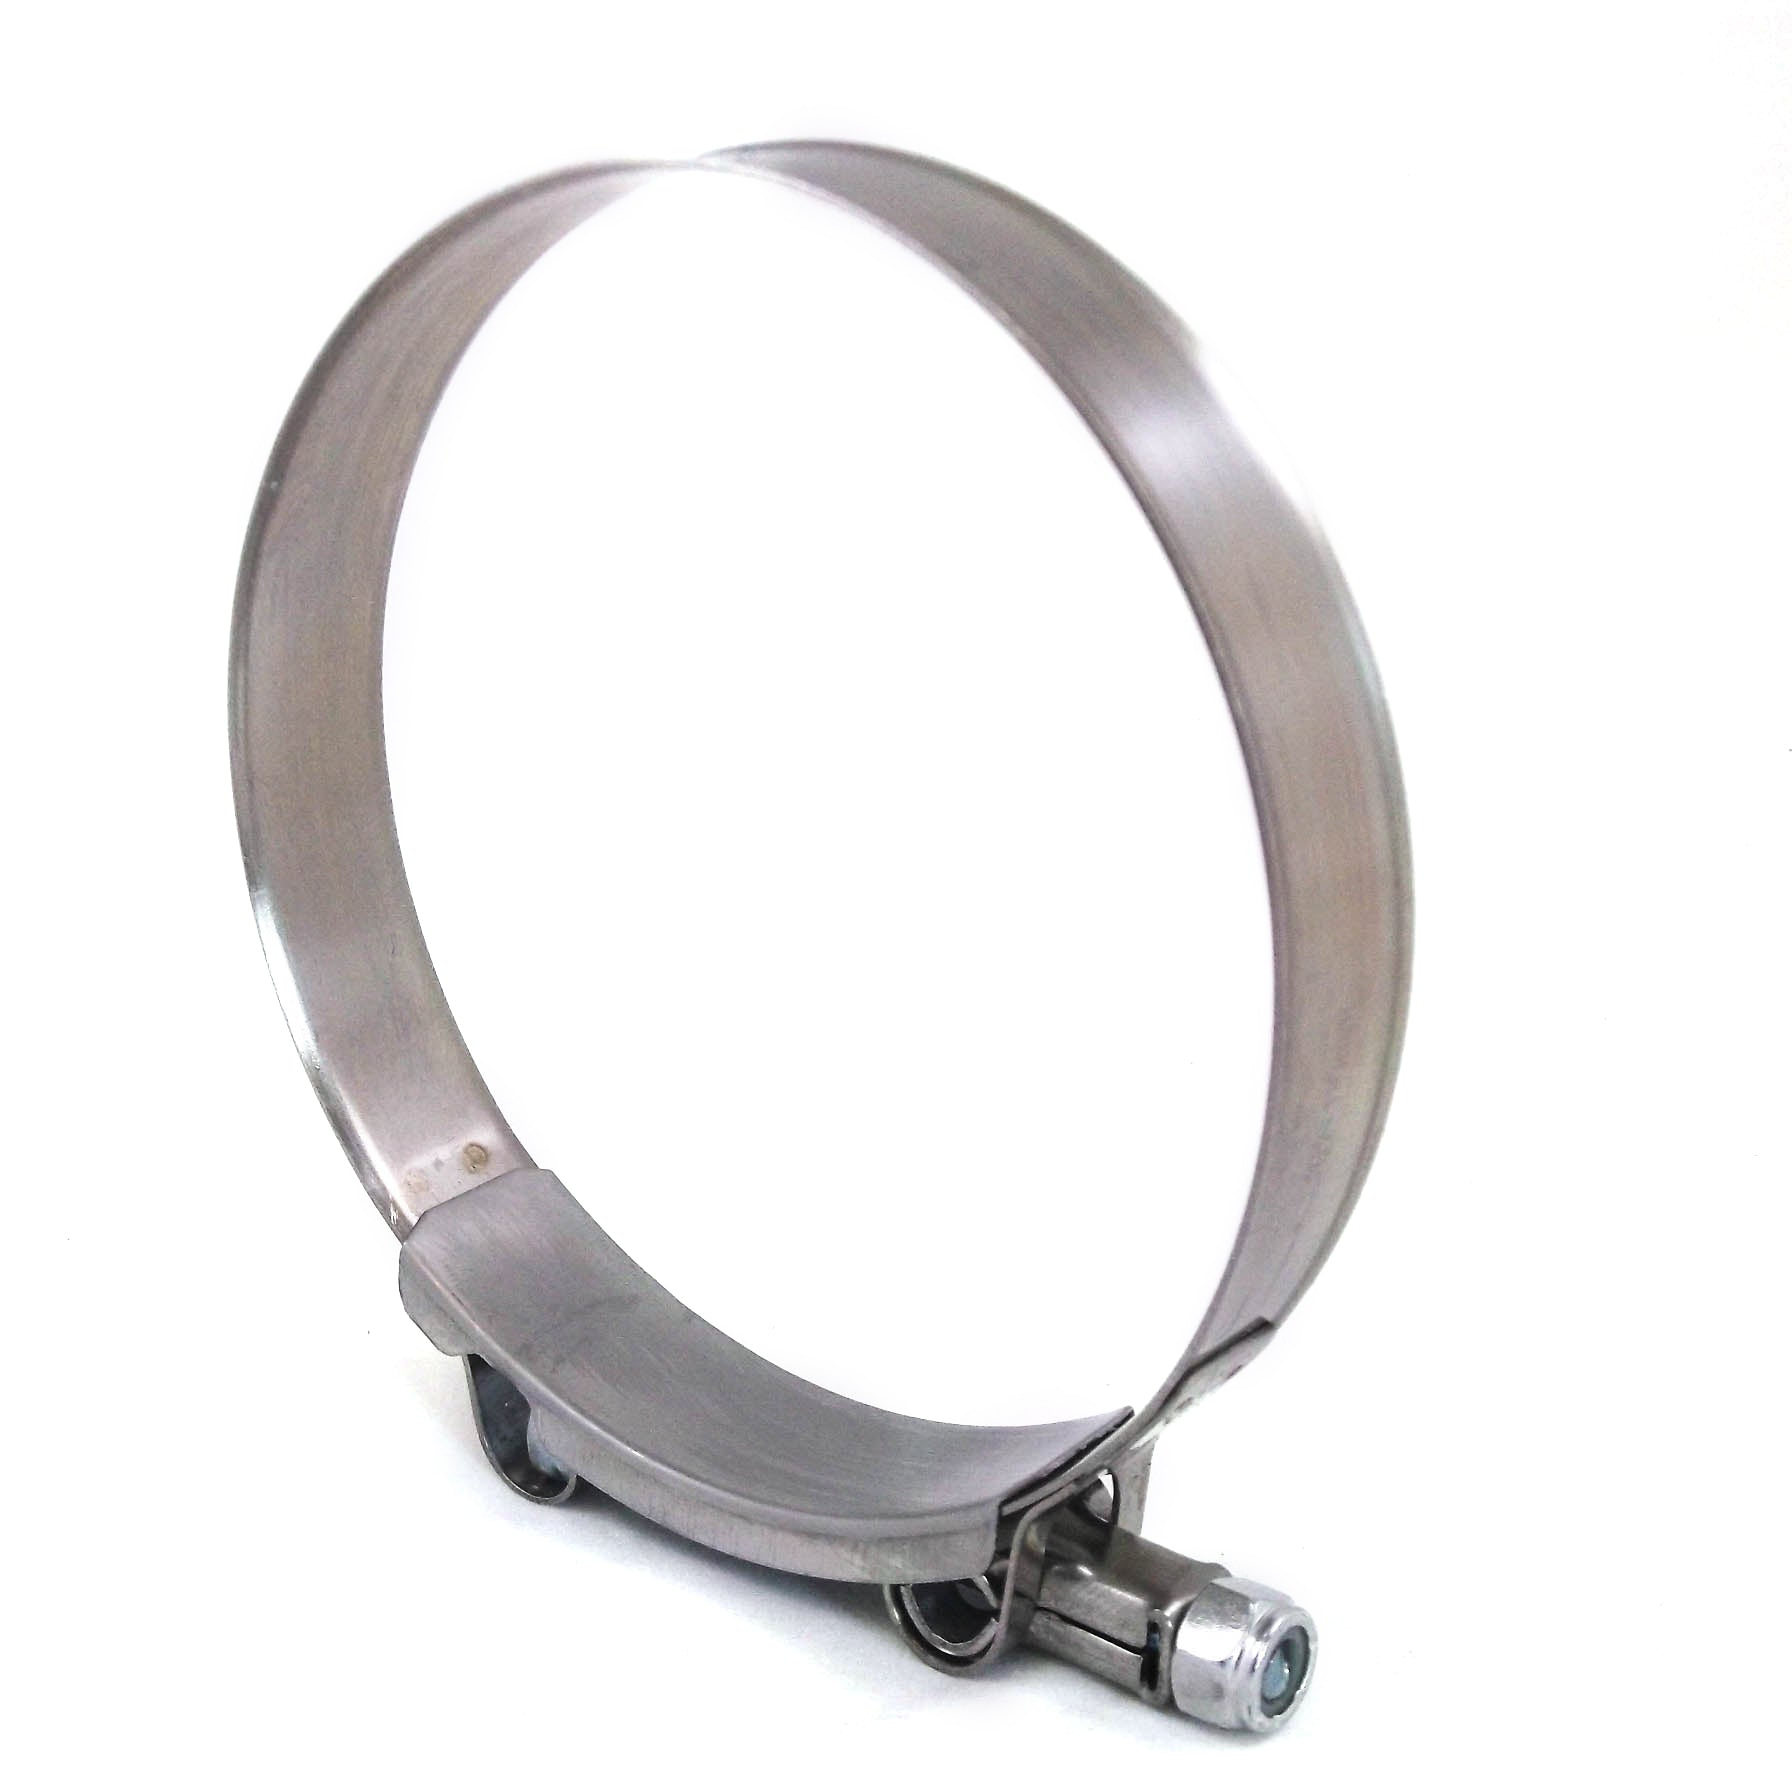 1x Premium 304 Stainless Steel T-Bolt Turbo Silicone Hose Clamp 4 Inches 102-110mm